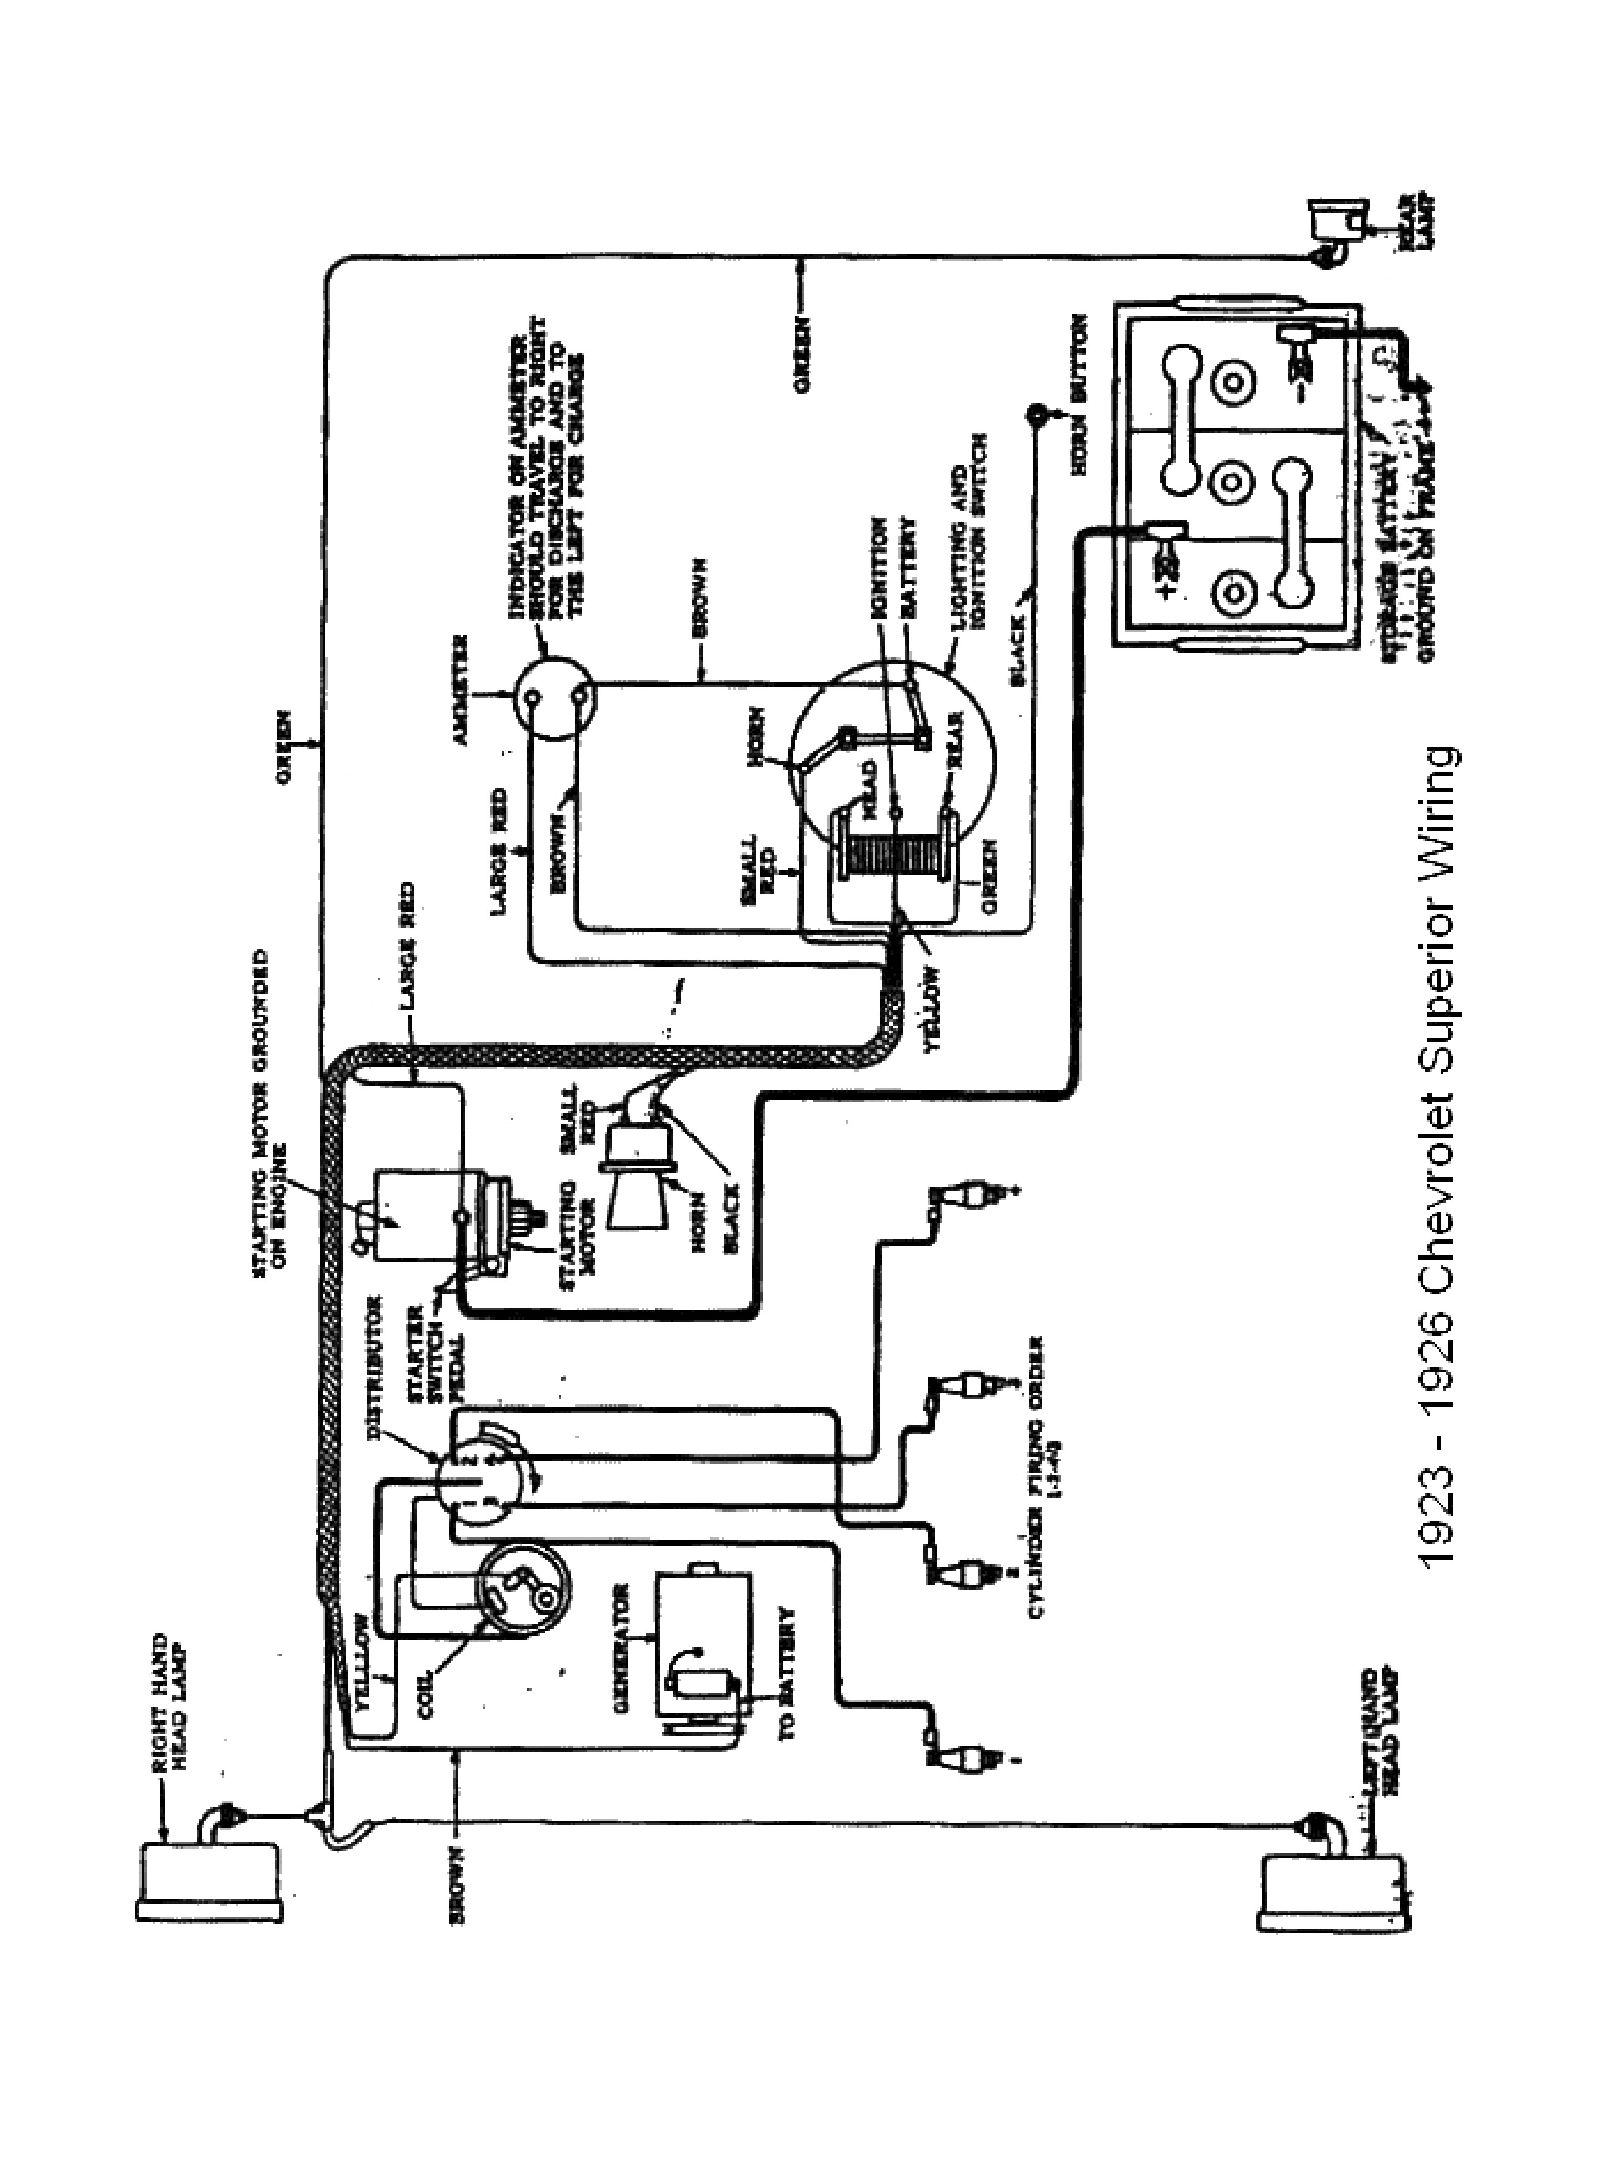 chevy wiring diagrams 1979 International Truck Wiring Diagram 1923 superior model 1923 superior model